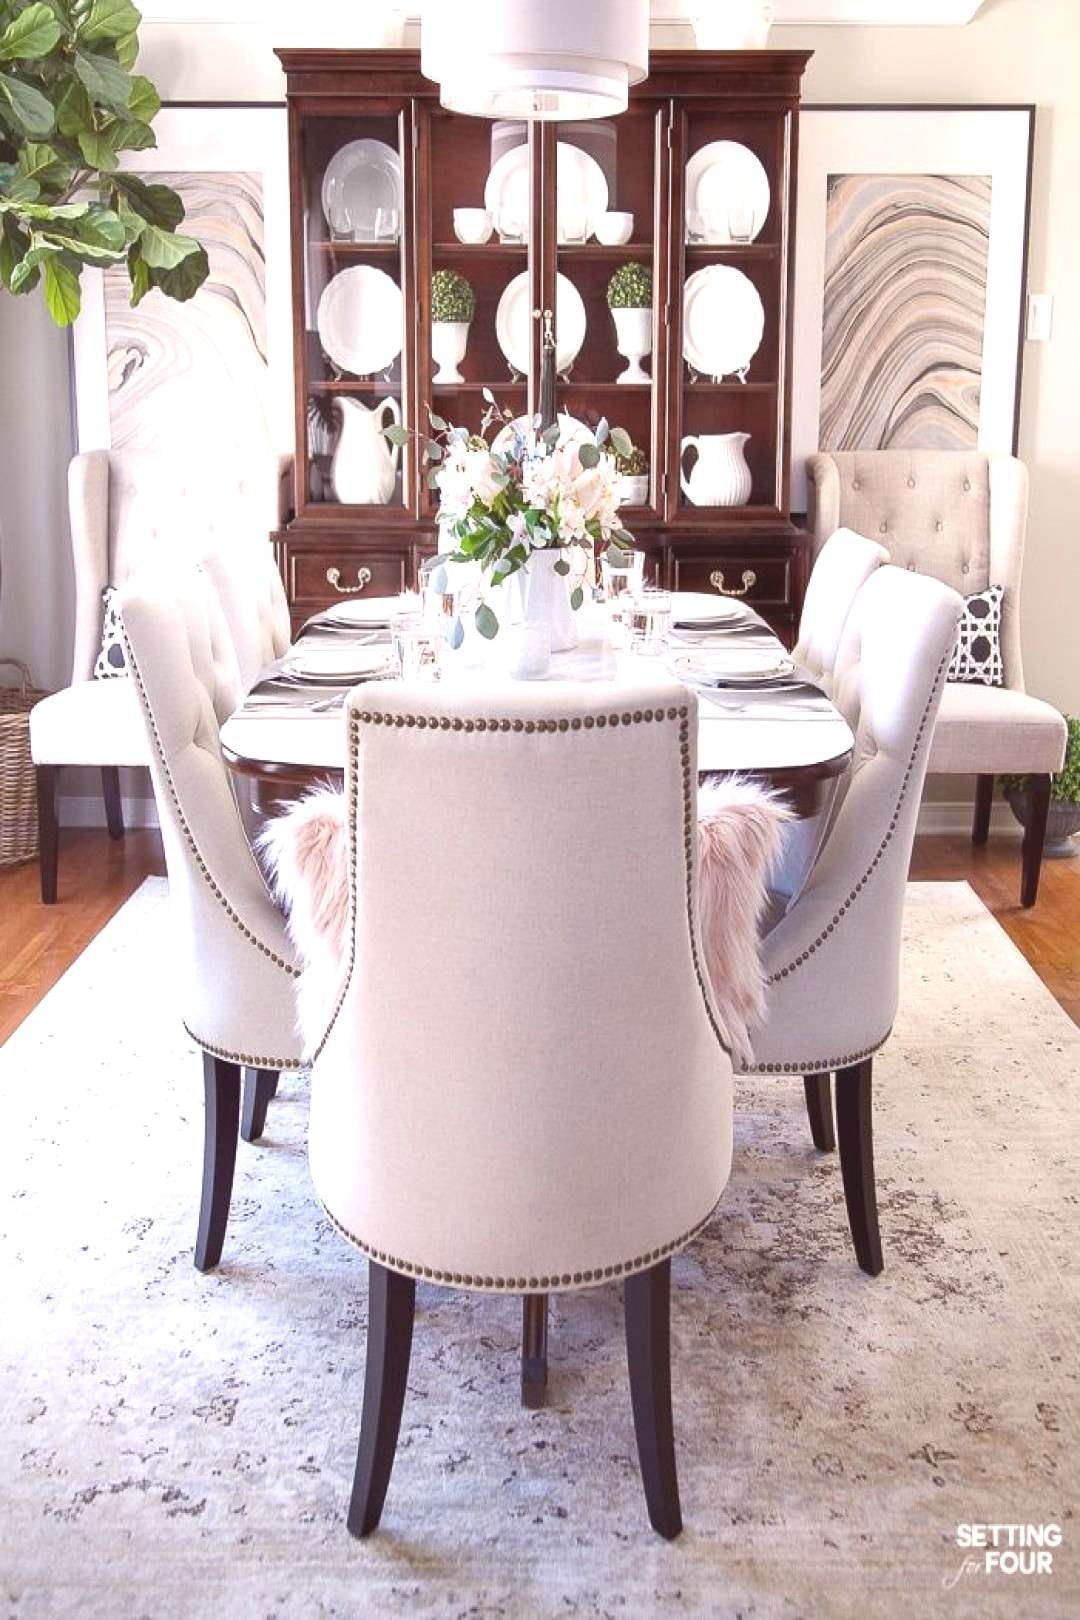 Dining Room Decor Ideas - Transitional Glam Style.